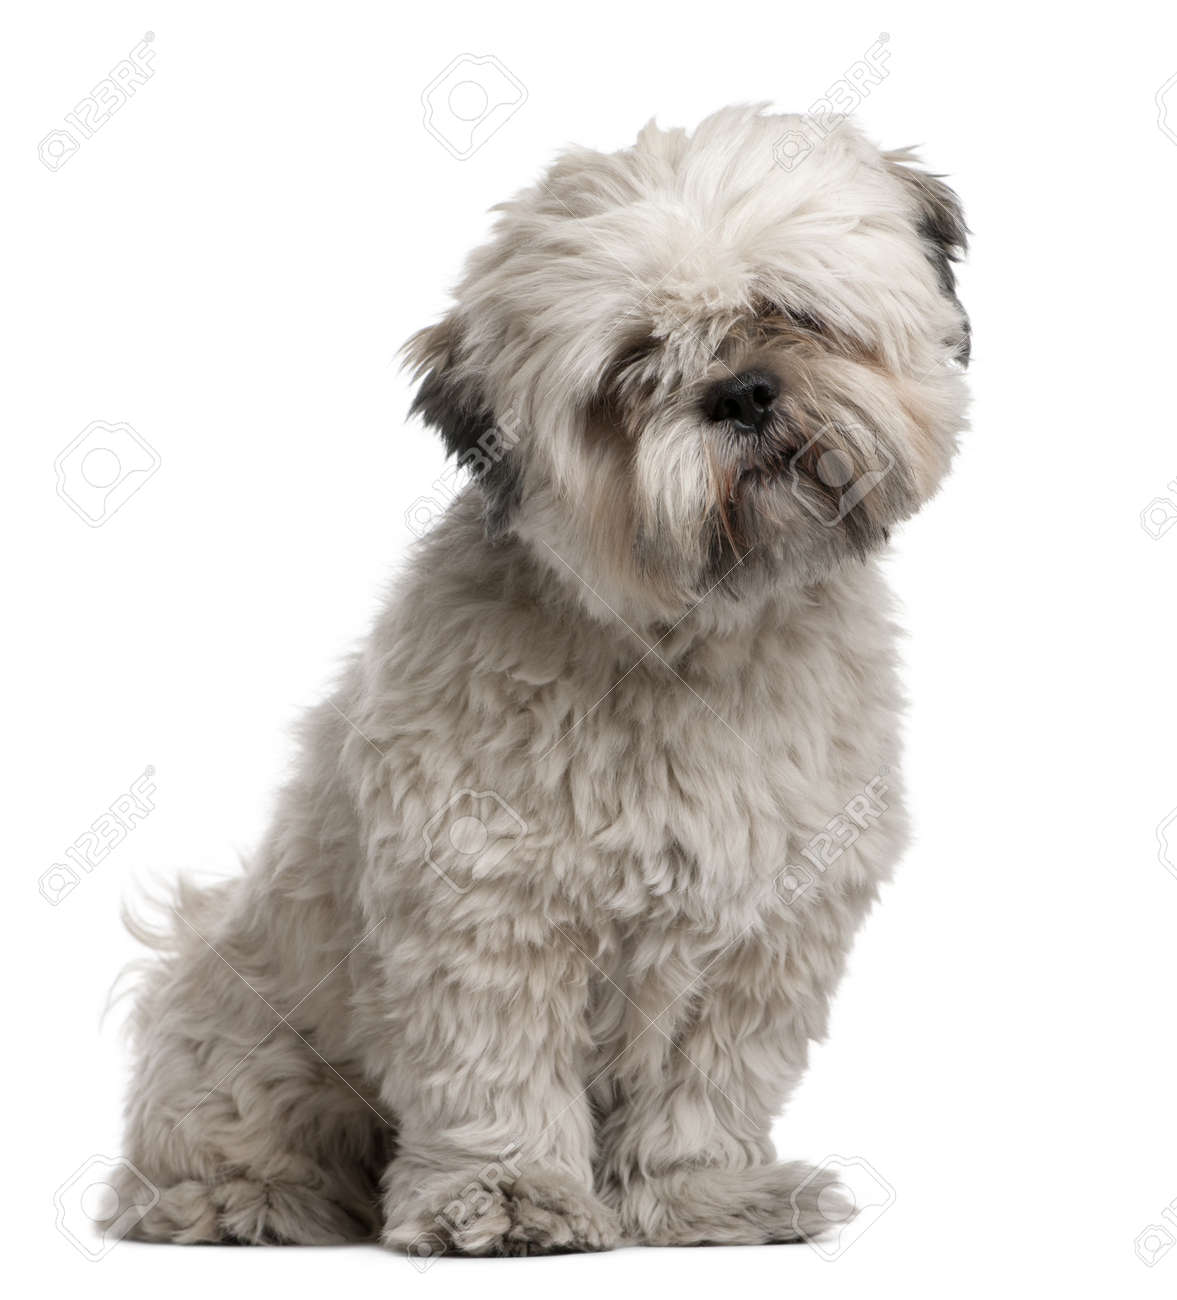 Lhasa Apso, 14 months old, sitting in front of white background Stock Photo - 7128011